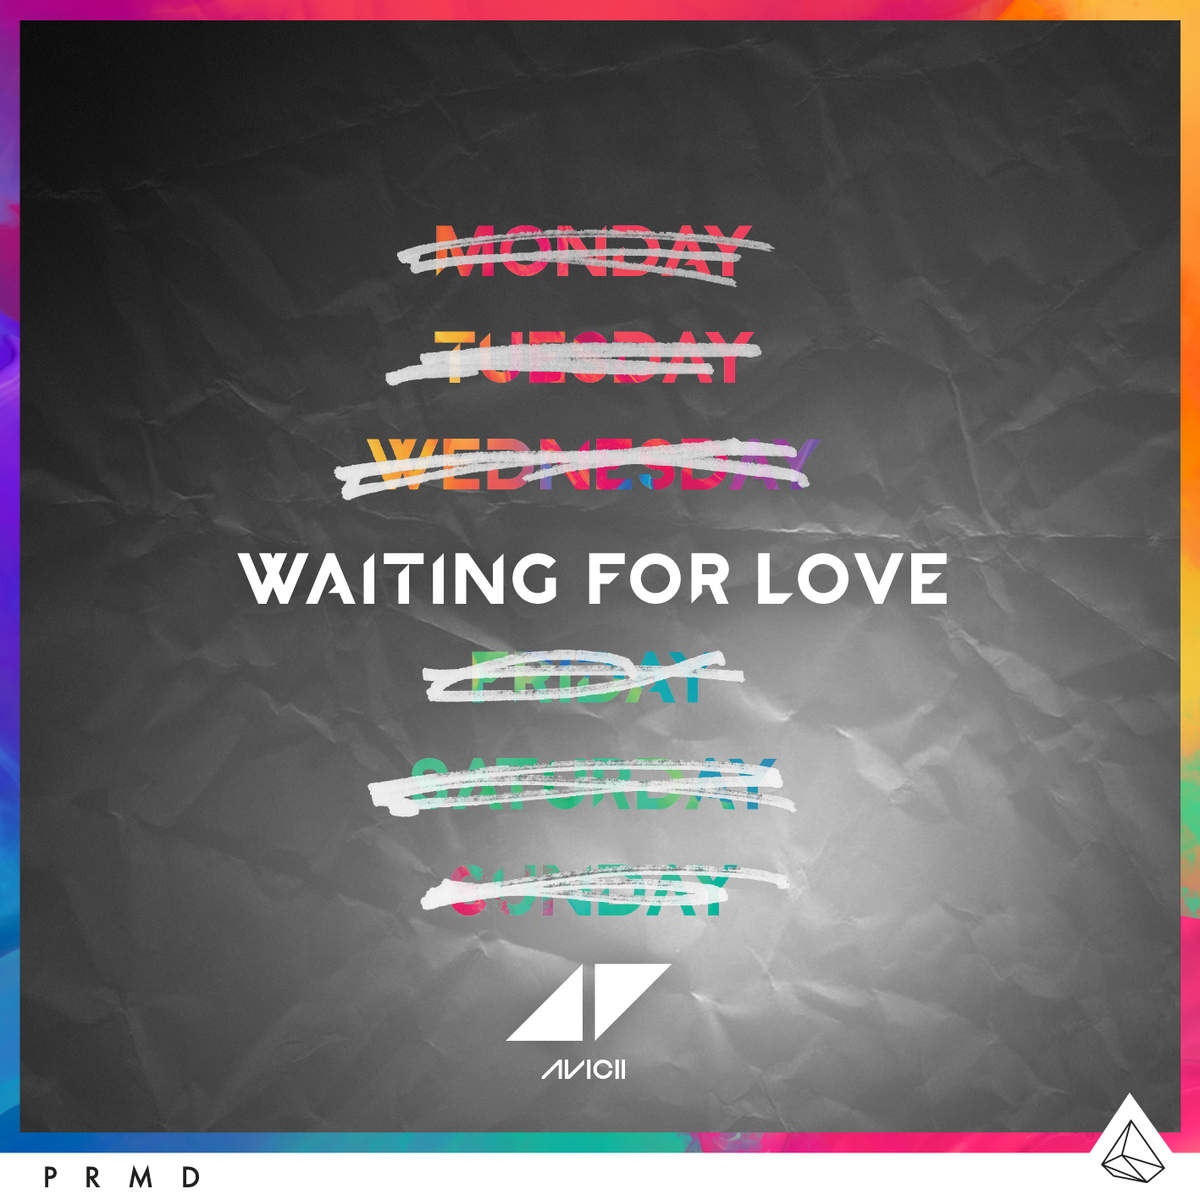 Avicii waiting for love 2015 1200x1200